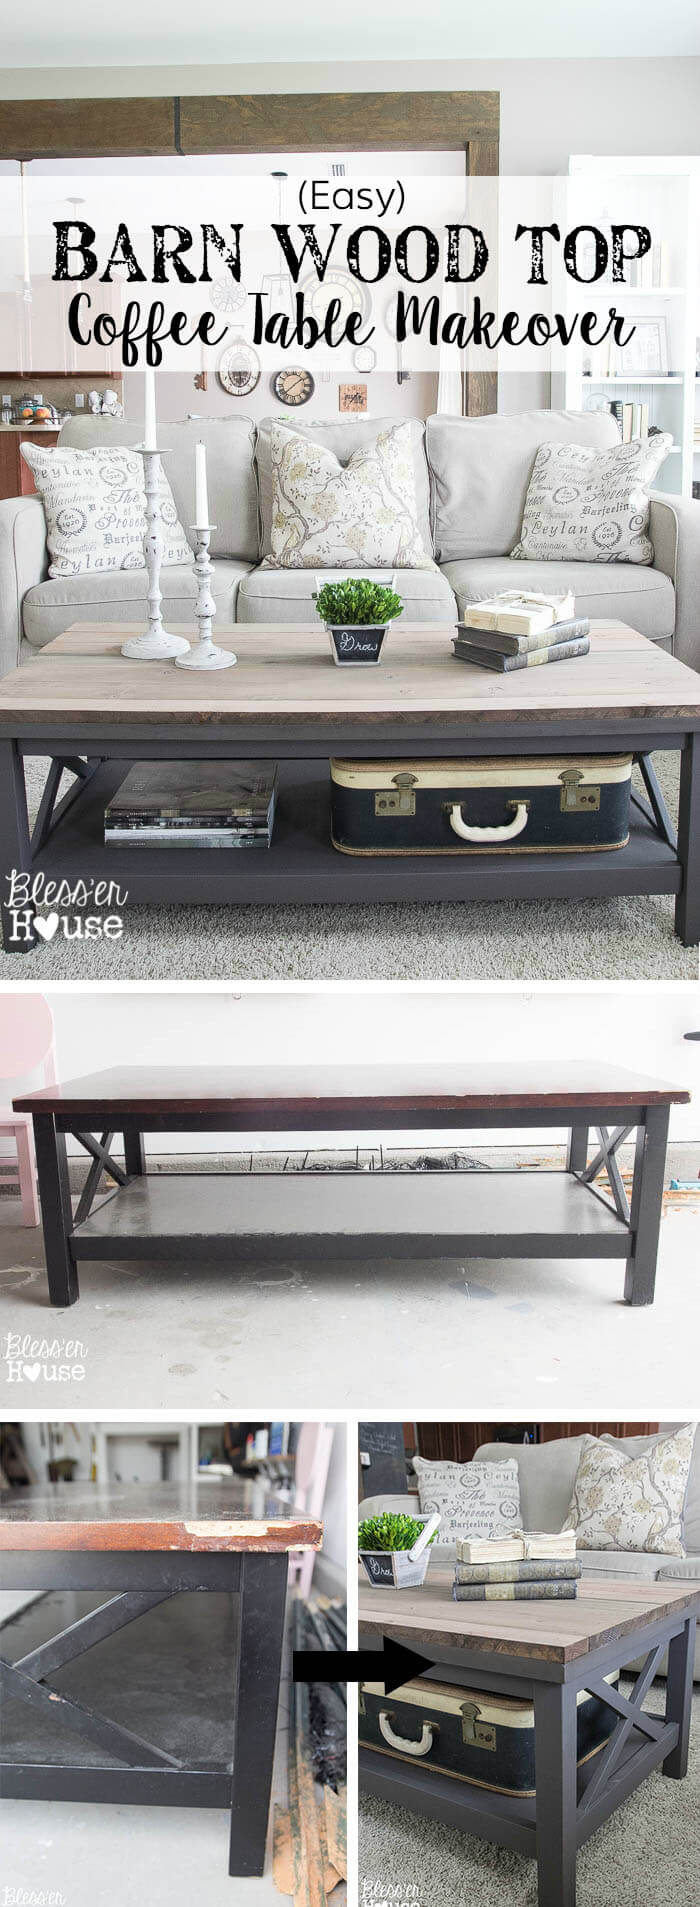 15 Easy Farmhouse Style DIY Coffee Table